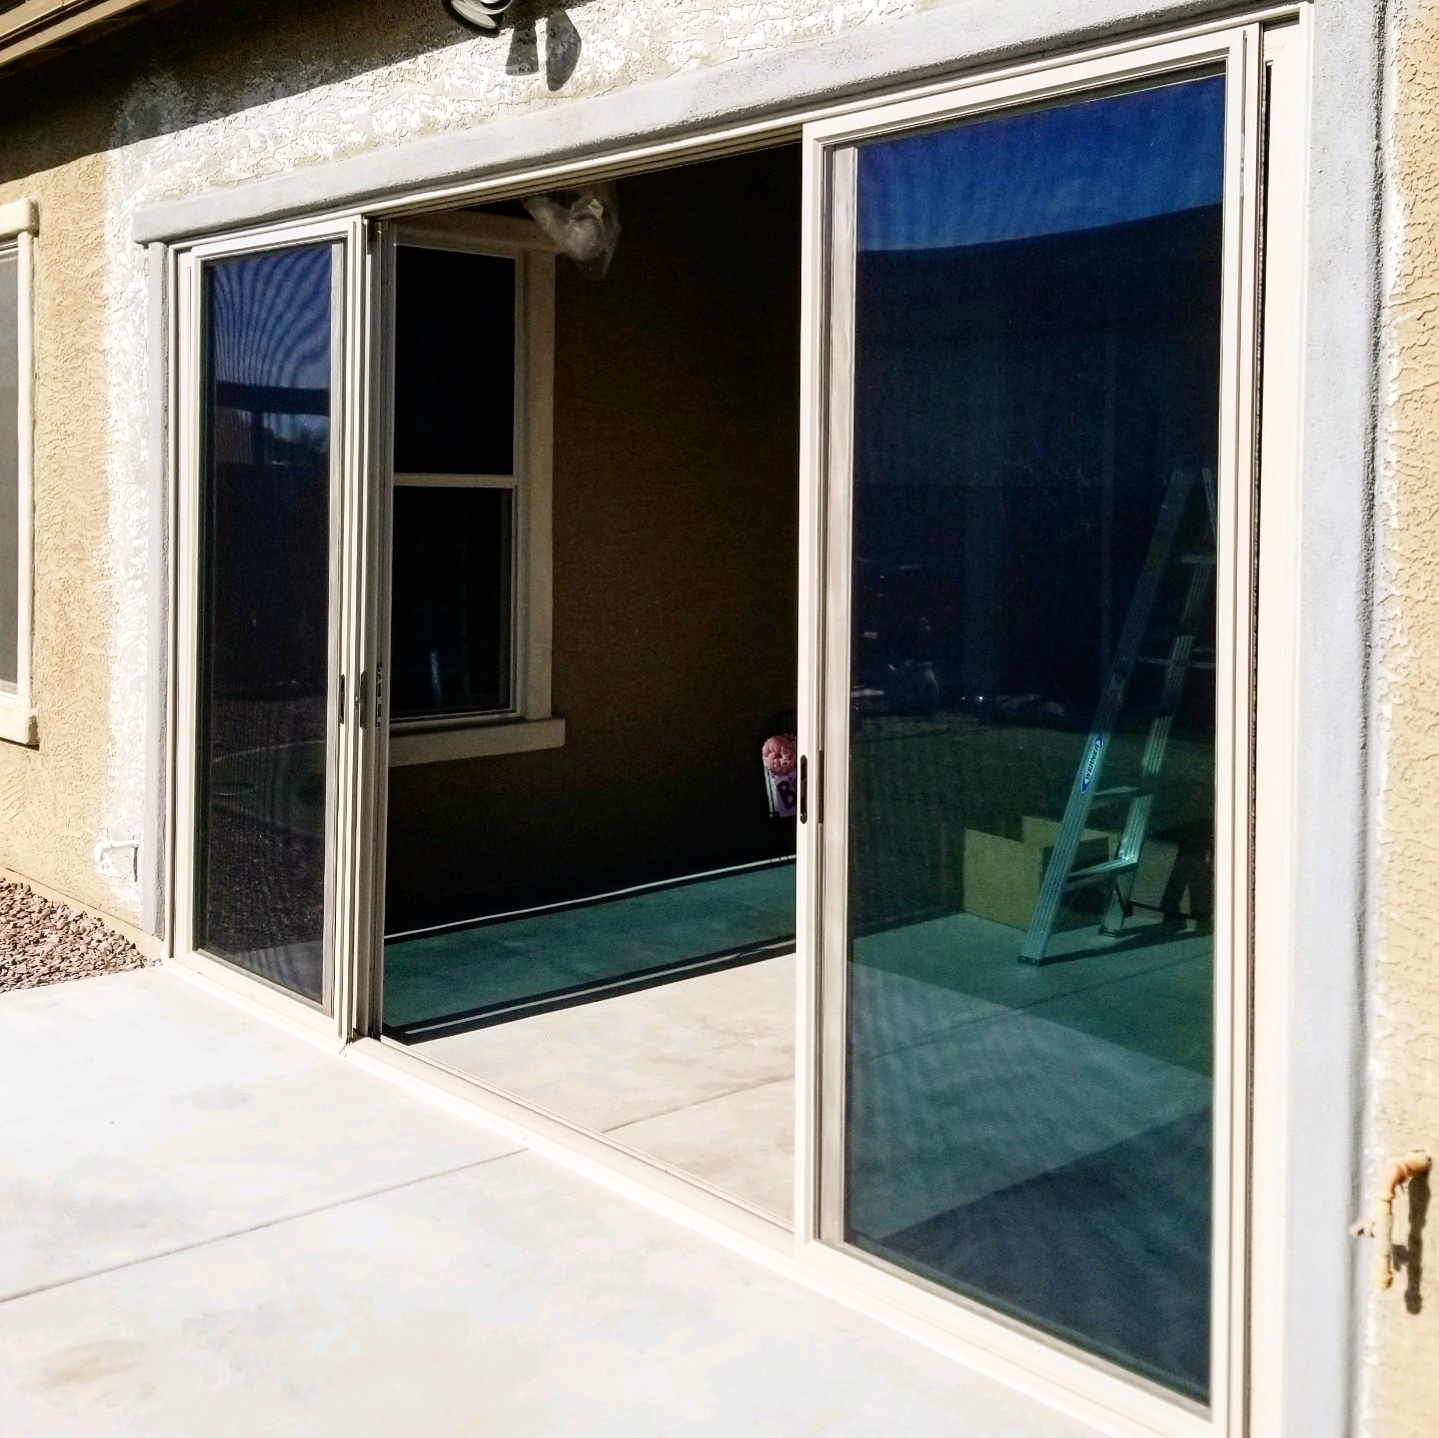 Arizona Window and Door in Scottsdale and Tucson showing back sliding door of home